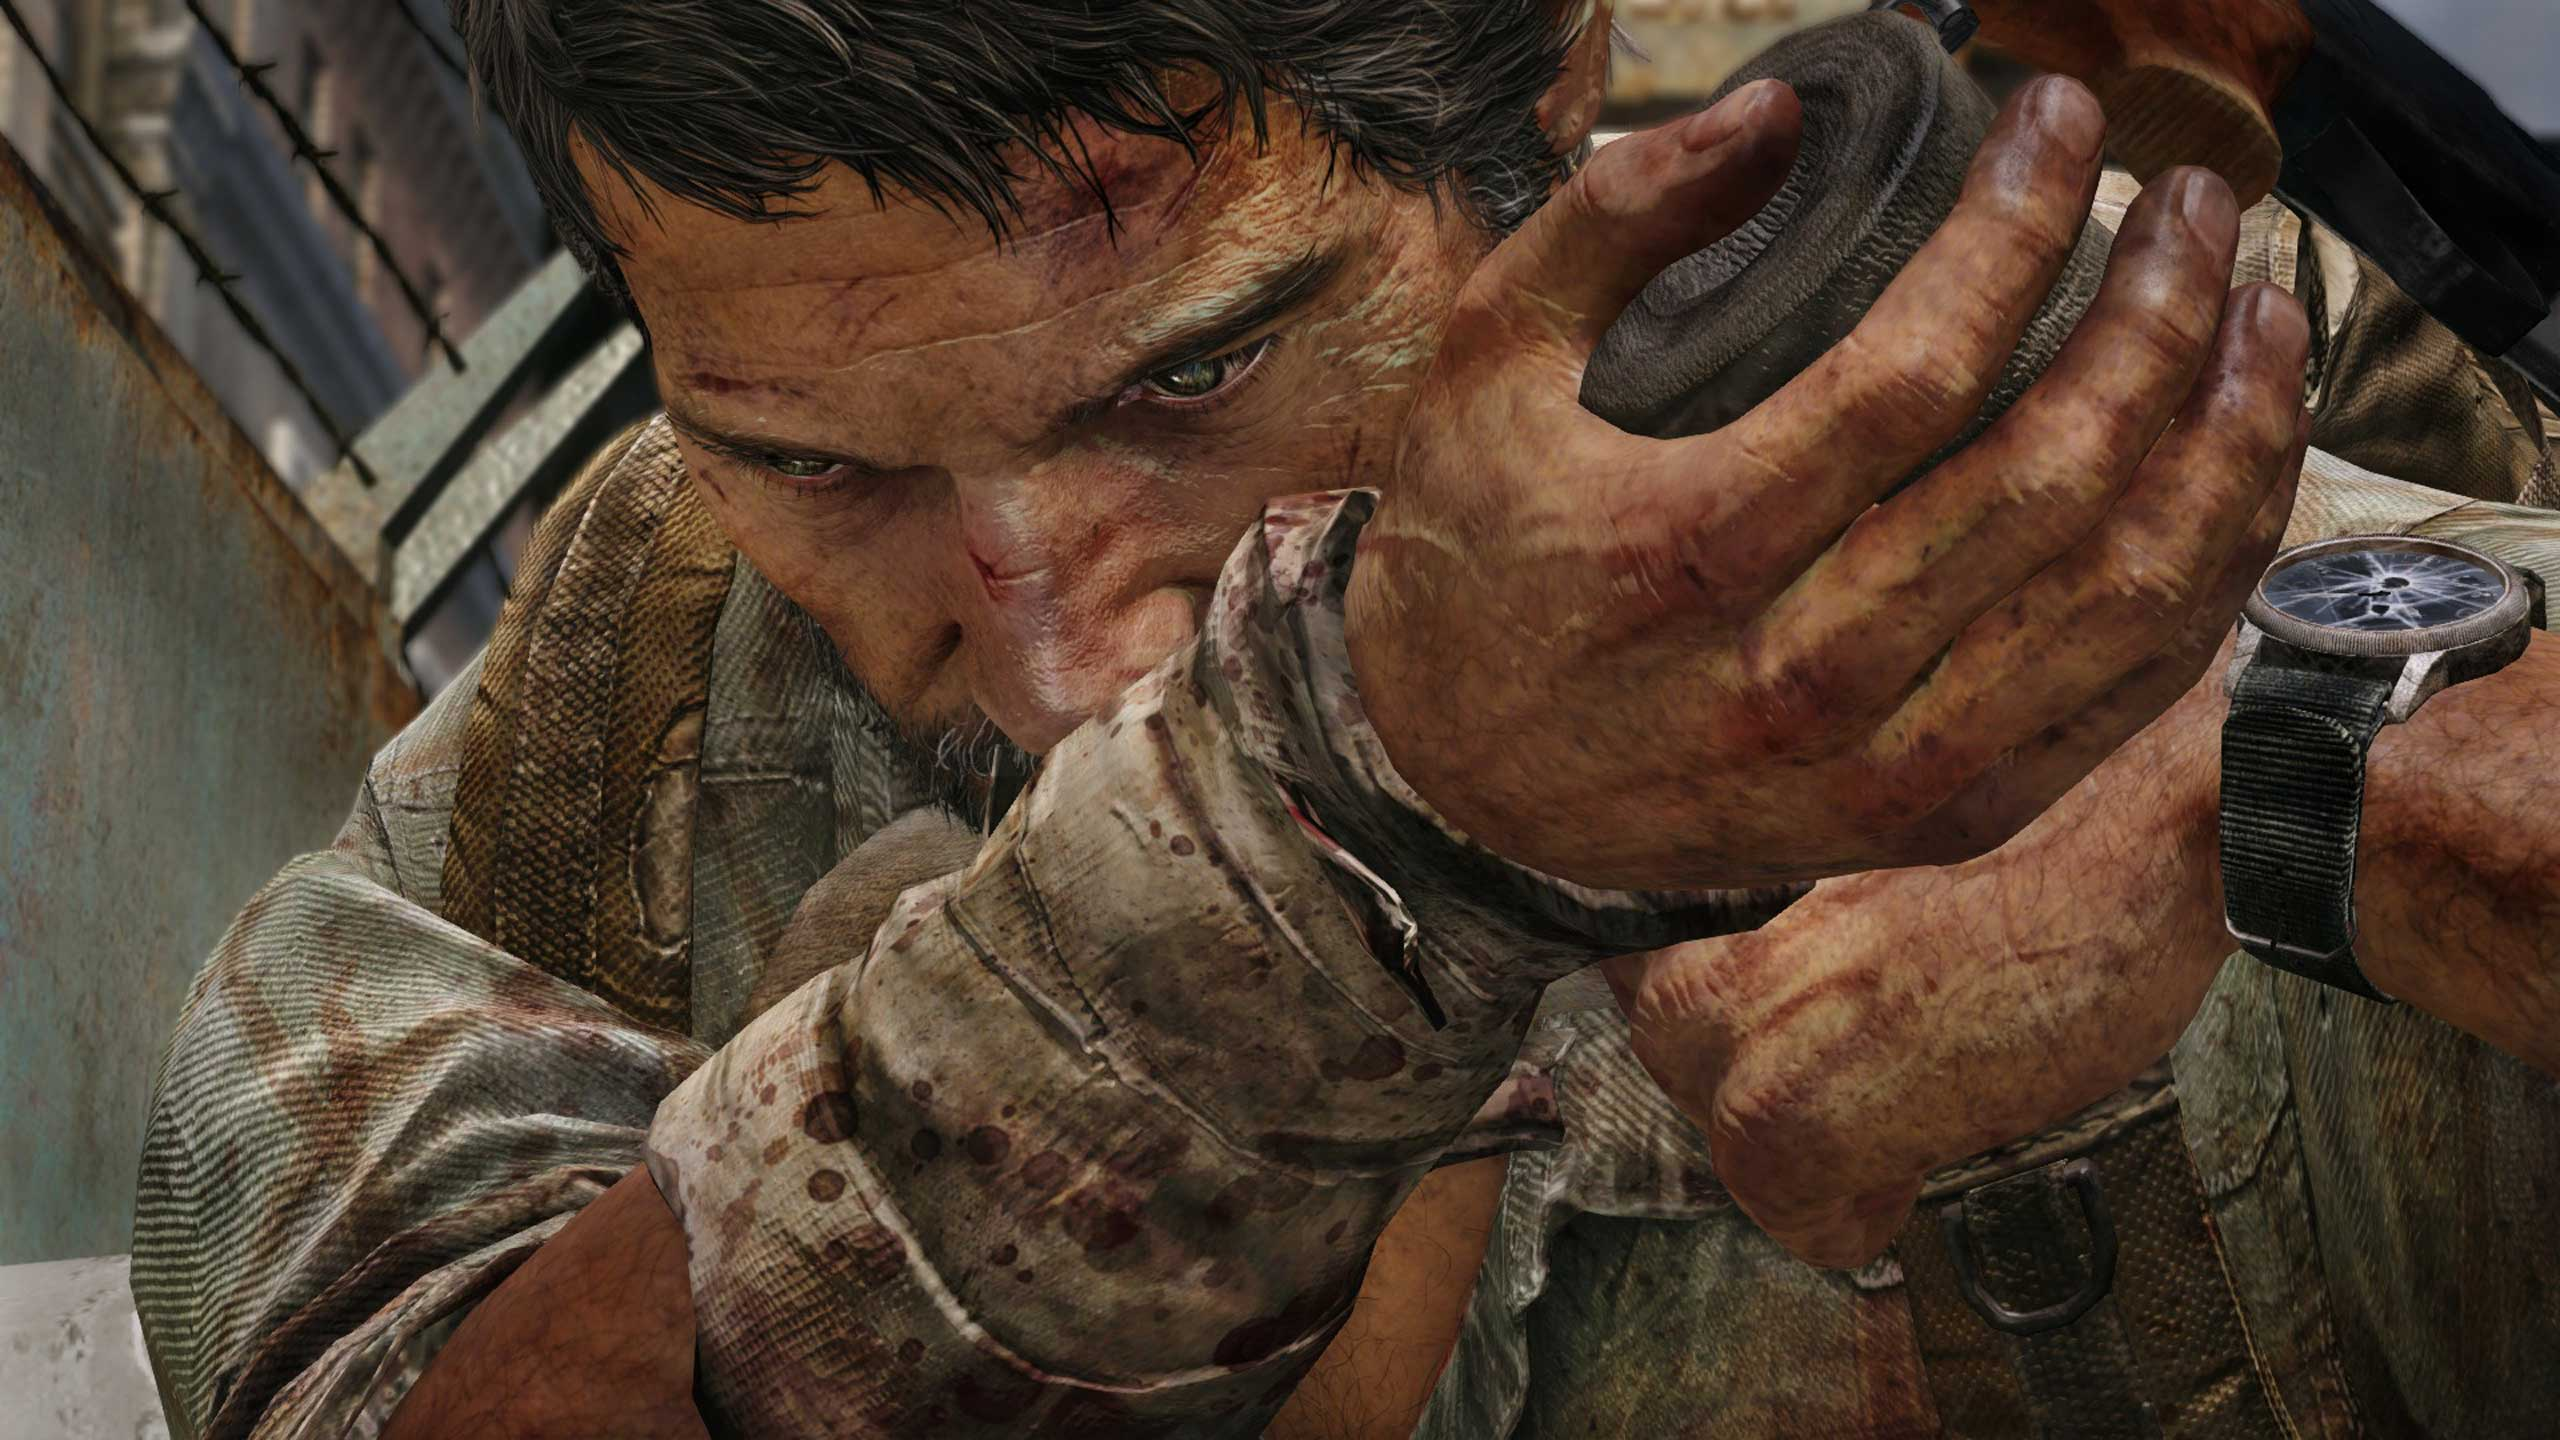 "<strong>The Last of Us: Remastered</strong>. Naughty Dog's meditation on the worst (and best) of humanity is built on technology that reaches back through the studio's pulp-adventure <i>Uncharted</i> series.                                                                      The graphics are so impressive,                                    <a href=""http://lightbox.time.com/2014/09/15/war-photographer-video-game/"" target=""_blank"">TIME recently assigned a conflict photographer to photograph inside the game.</a>"